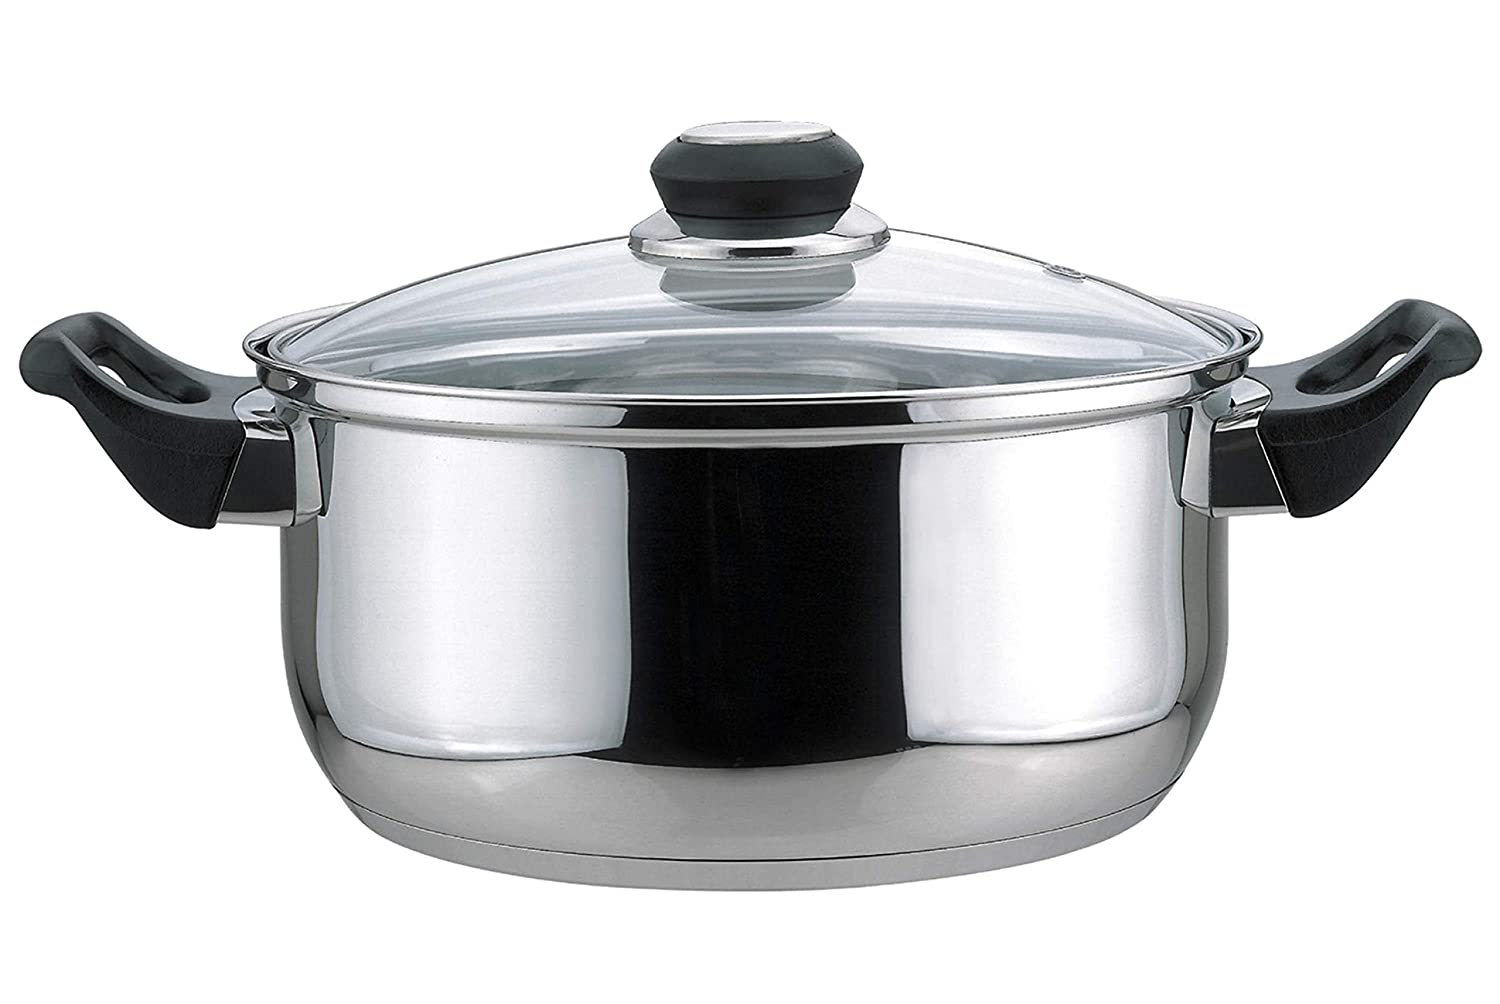 Culinary Edge 01005 Dutch Oven with Glass Cover, 5.5-Quart